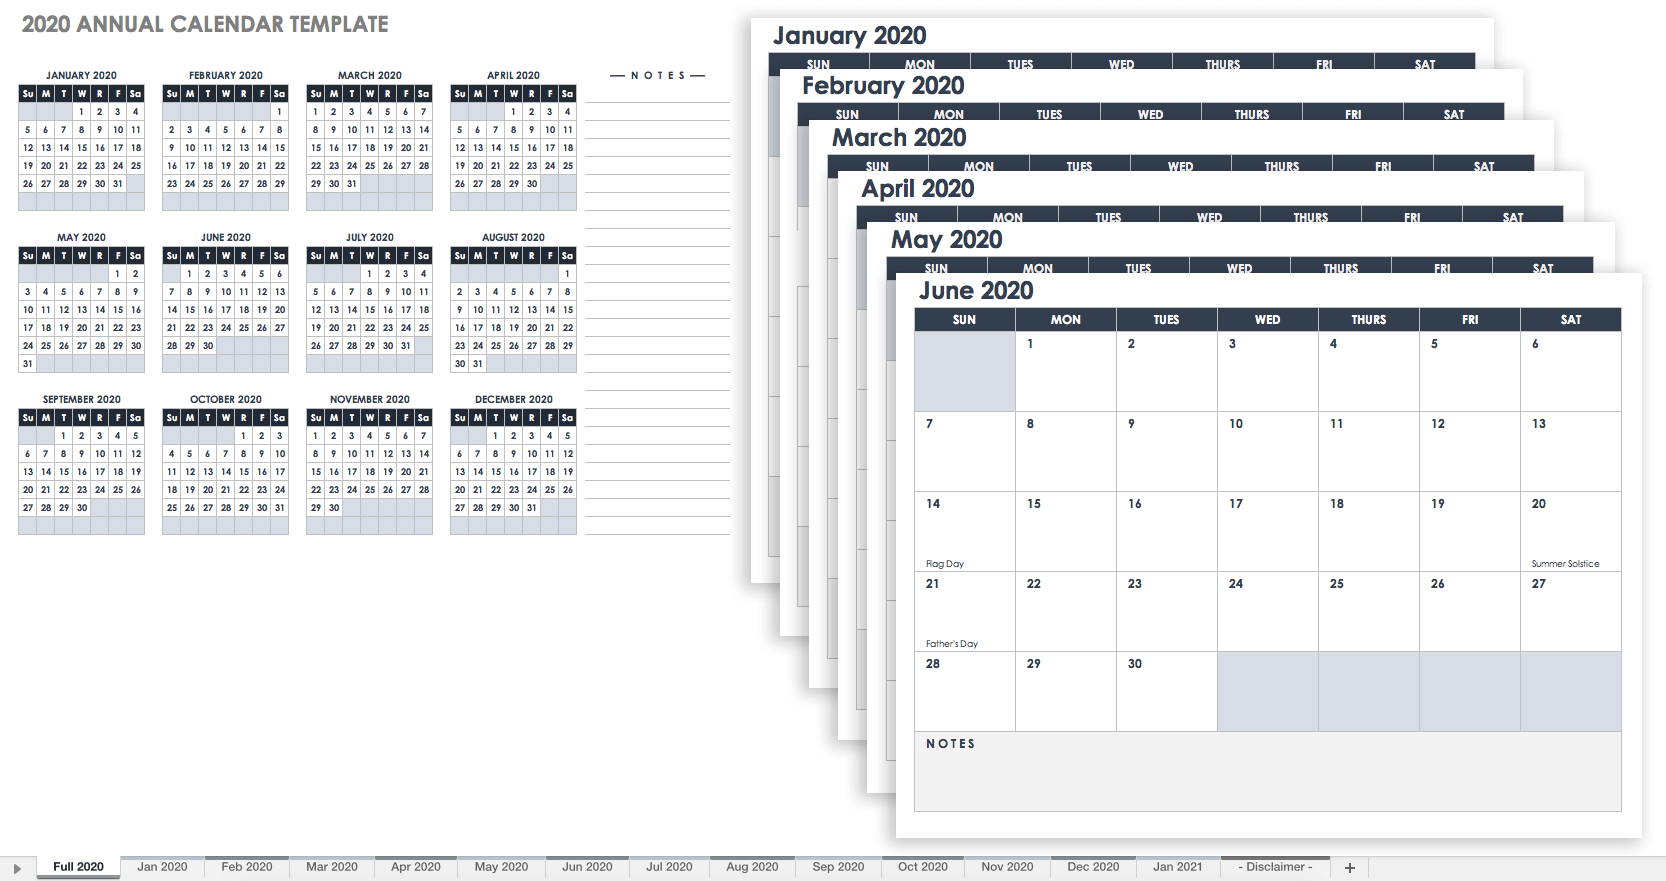 Free, Printable Excel Calendar Templates For 2019 & On | Smartsheet in Yearly Event Calendar Template Excel